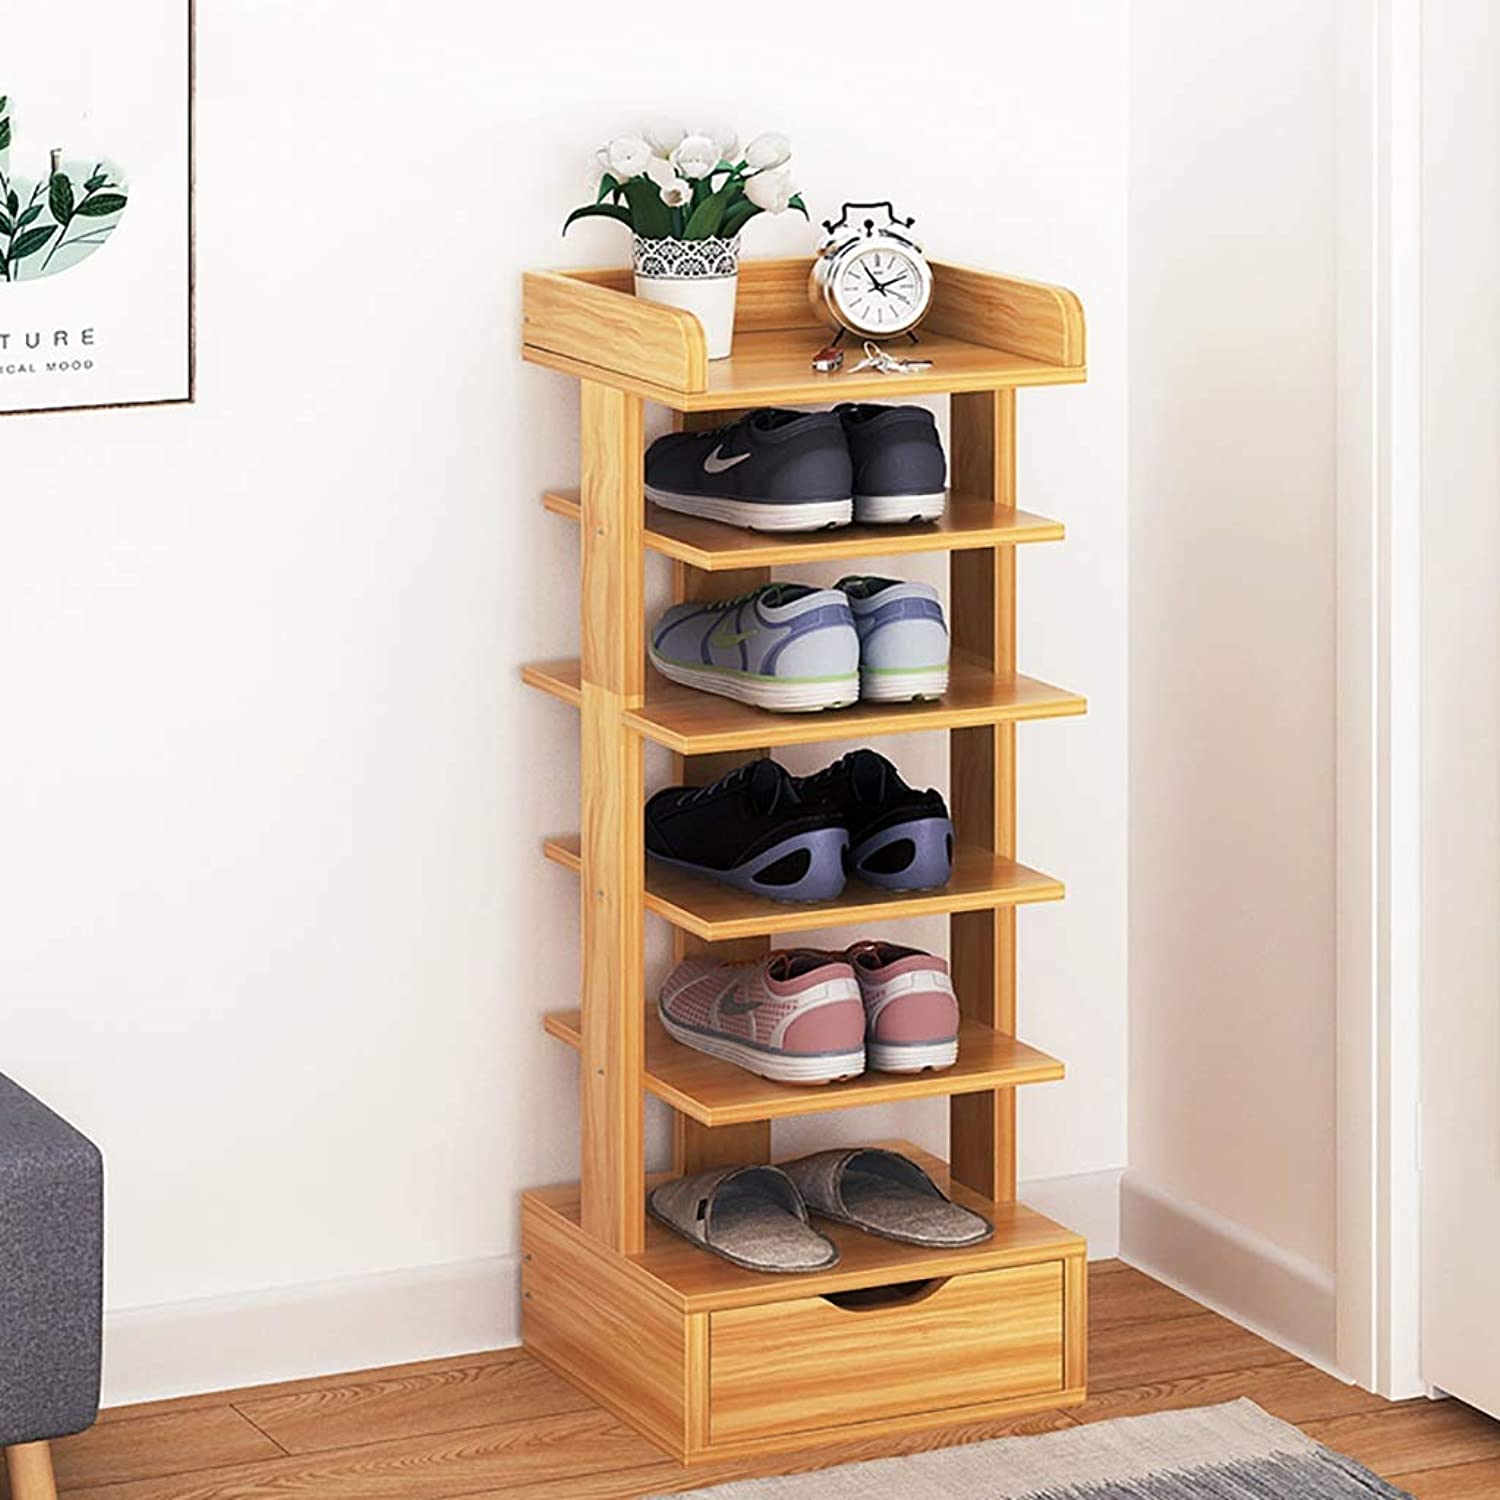 6-Layer shoes Rack Shelf Flower Stand Bookshelf Storage Shelf shoes Cabinet Multifunction Household Doorway Entrance Living Room Space Saving (color   B)